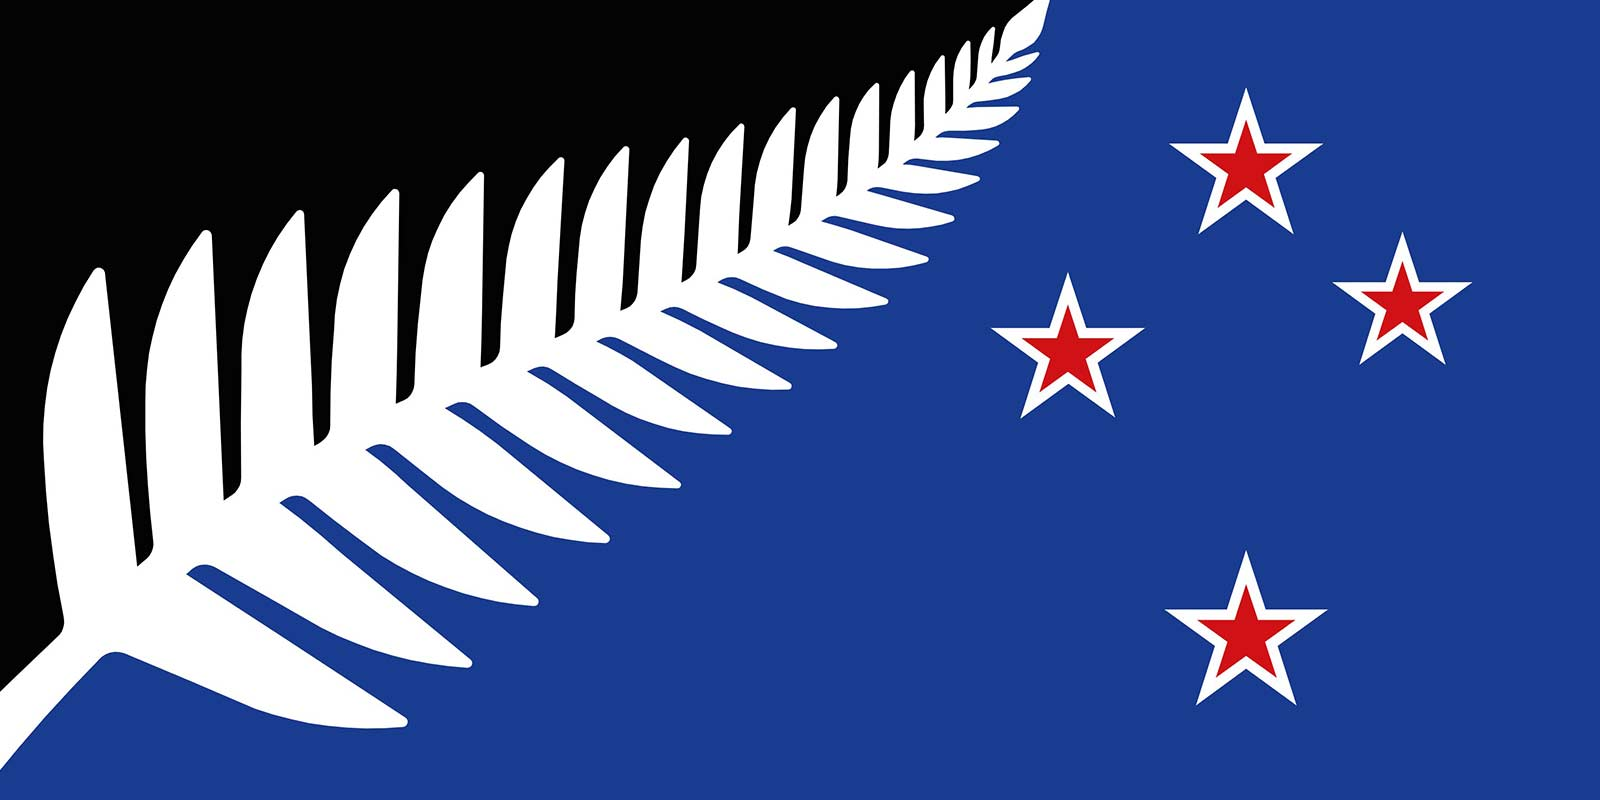 Australia and New Zealand: Friends or Foes?